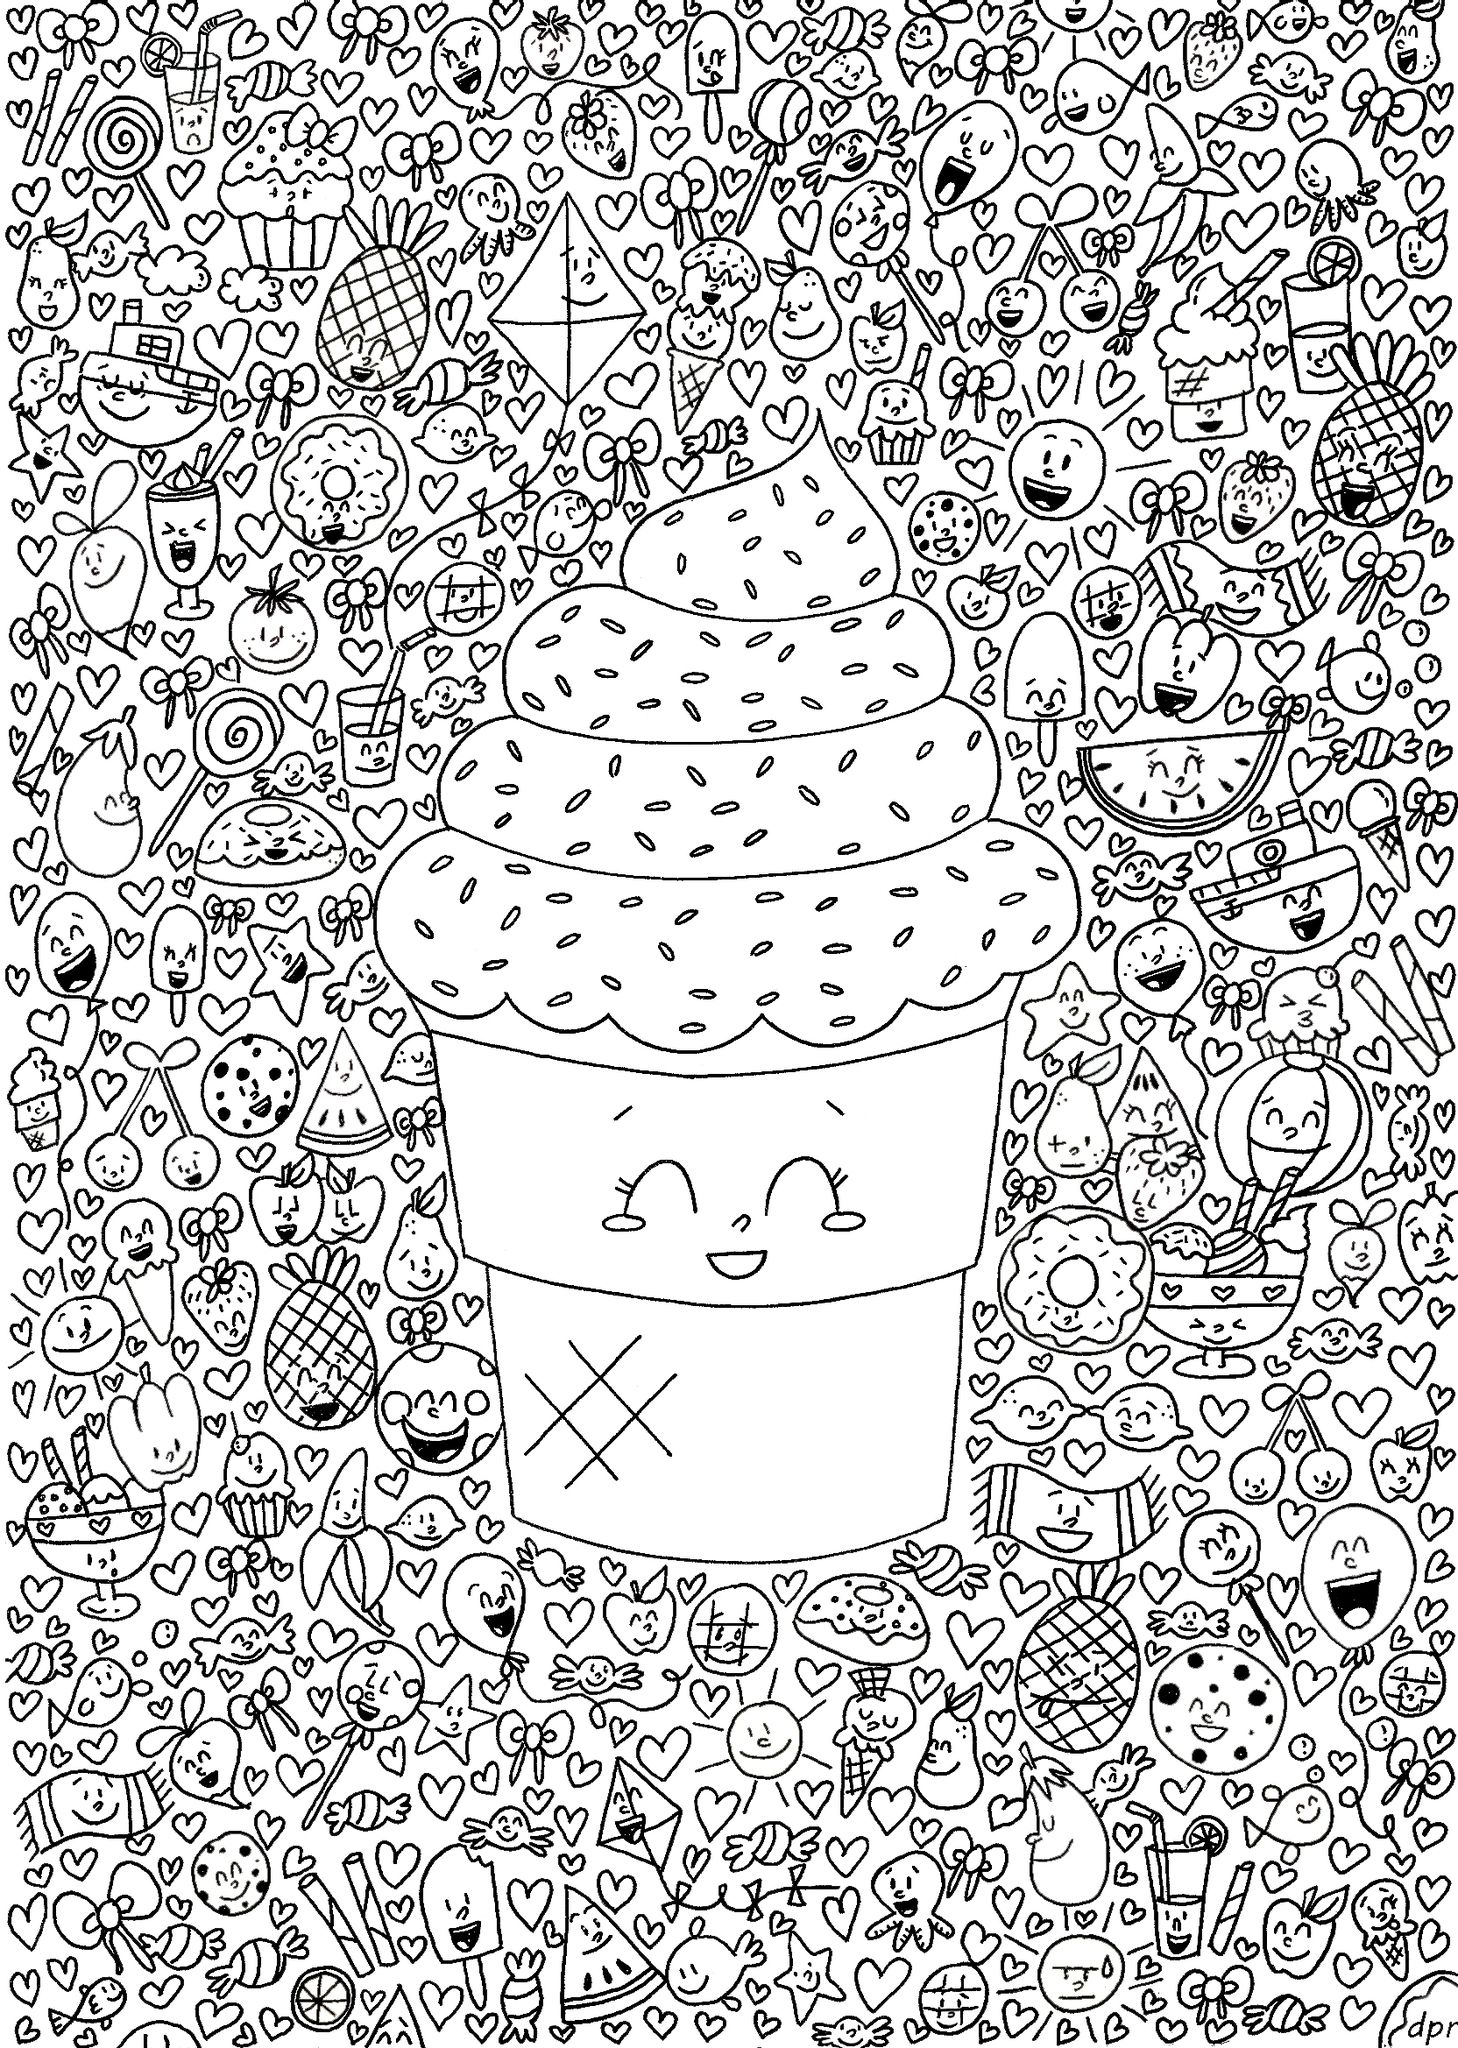 coloriage art thérapie kawaii | coloring pages | Pinterest ...